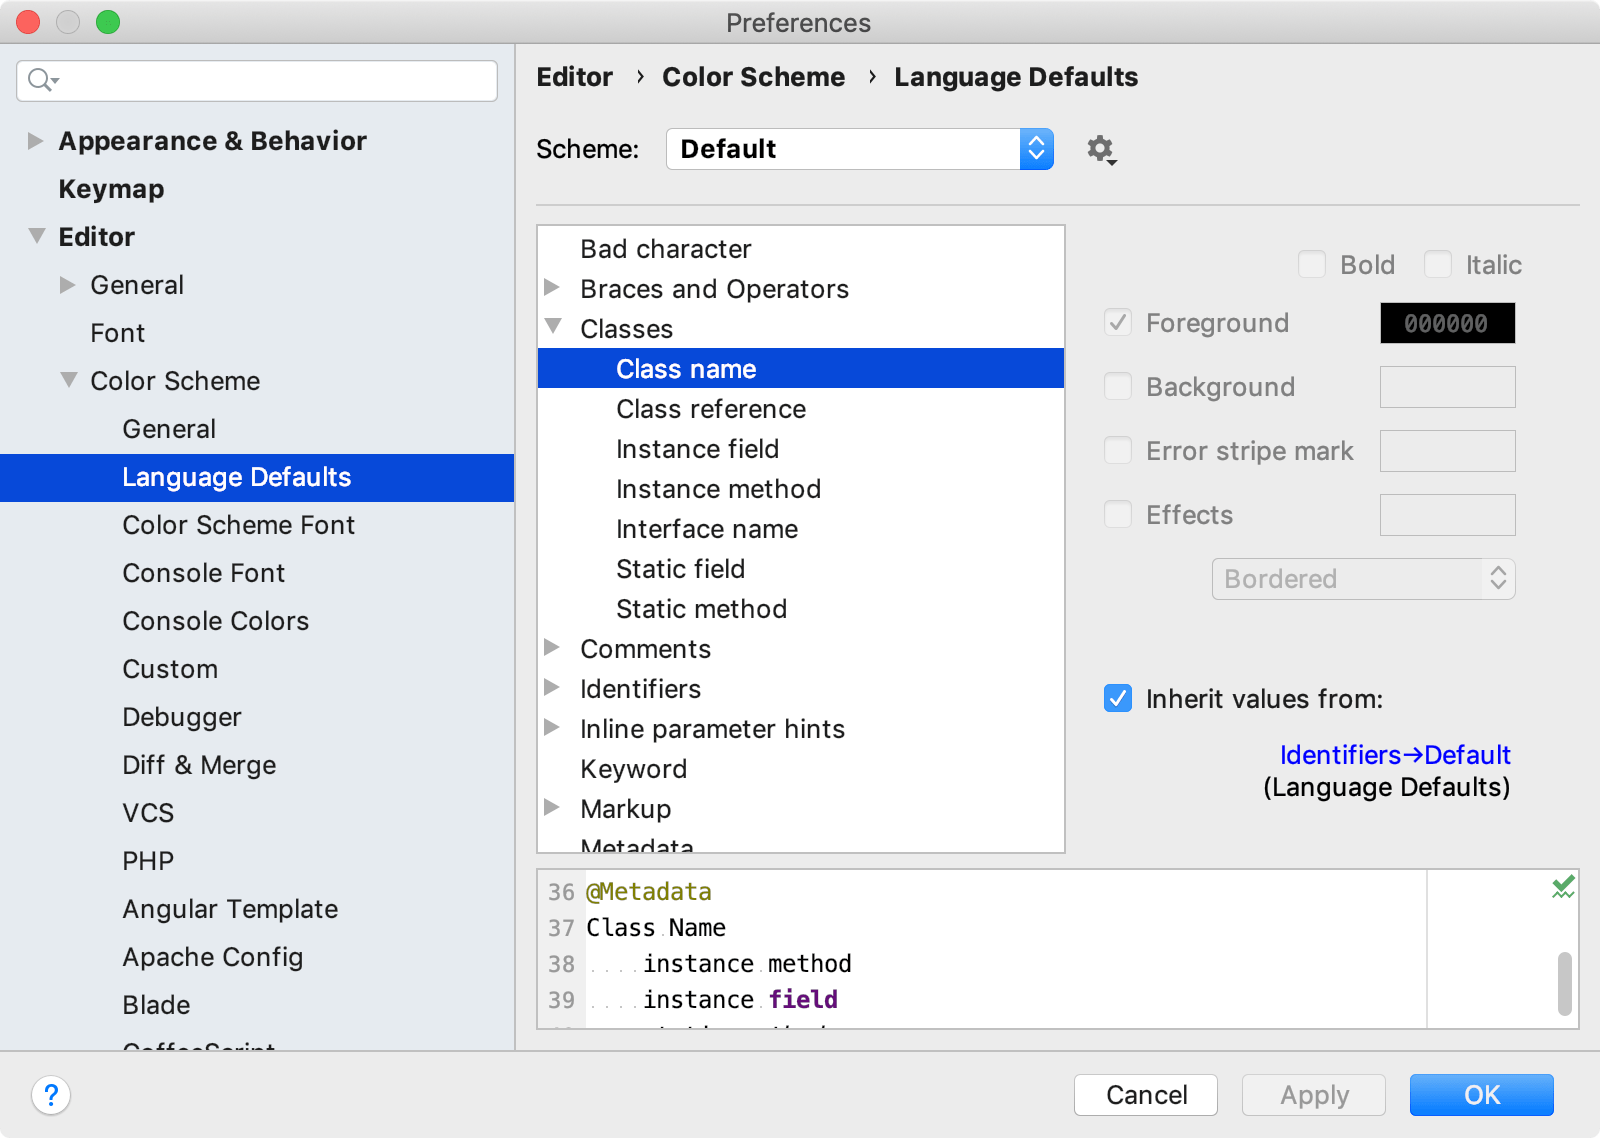 Language Defaults section under Color Scheme settings